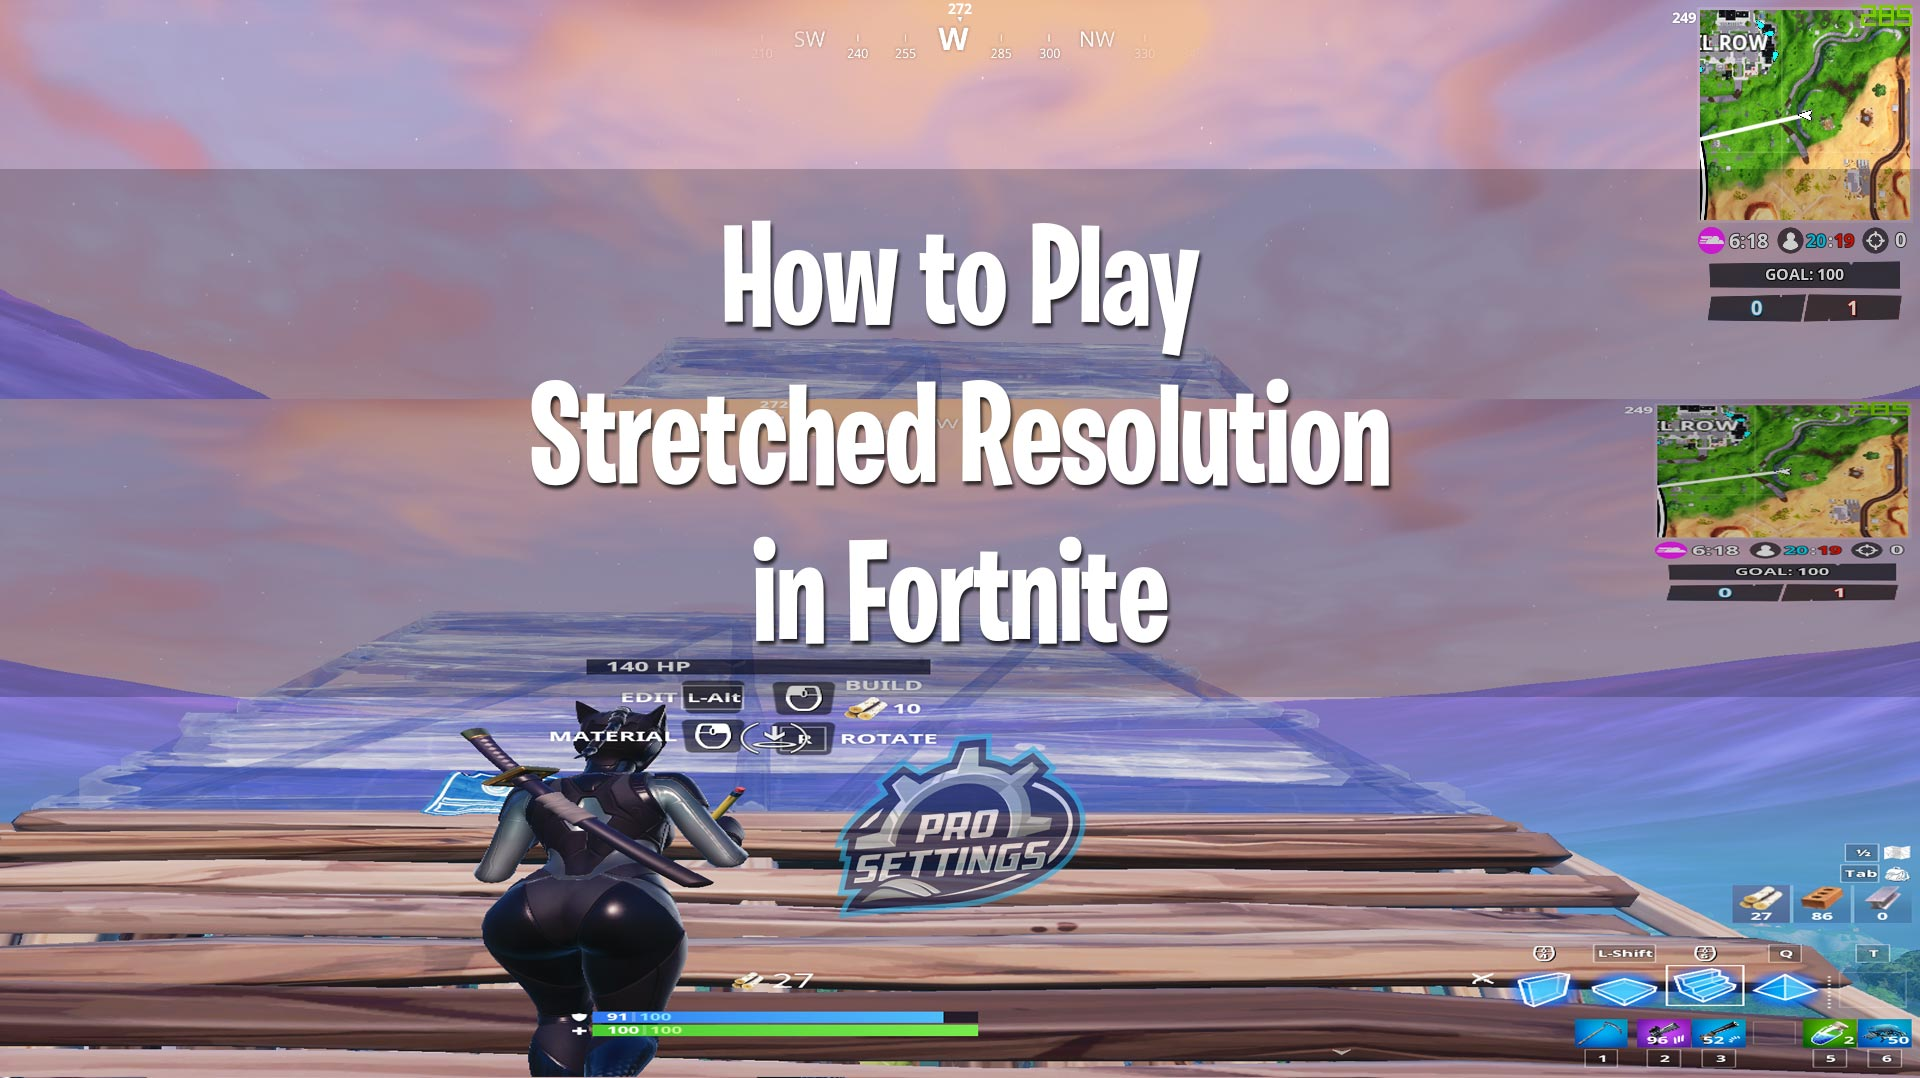 How To Play Stretched Resolution In Fortnite Easy Guide